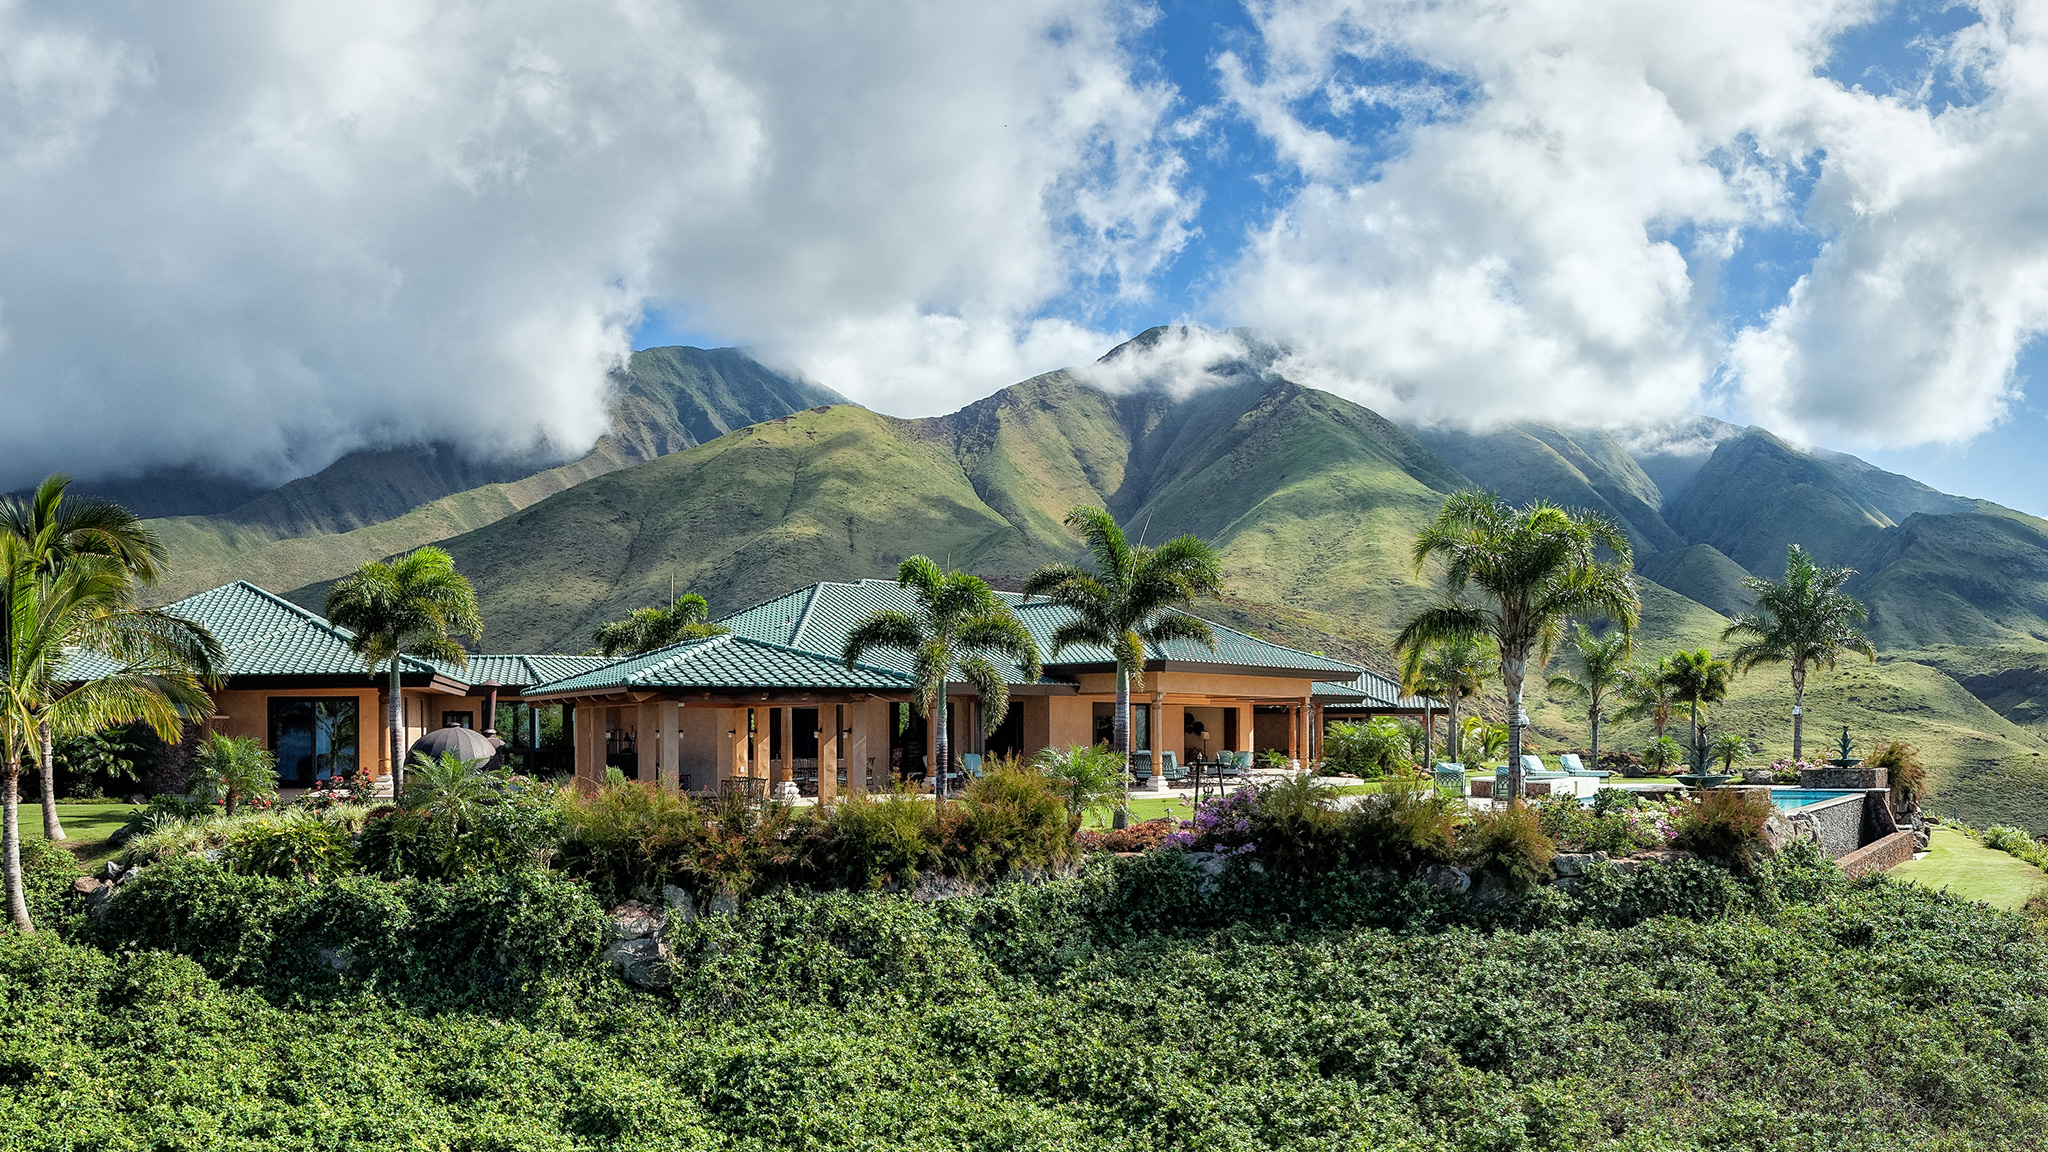 Hawaiian haven: why buyers seeking peace and privacy choose